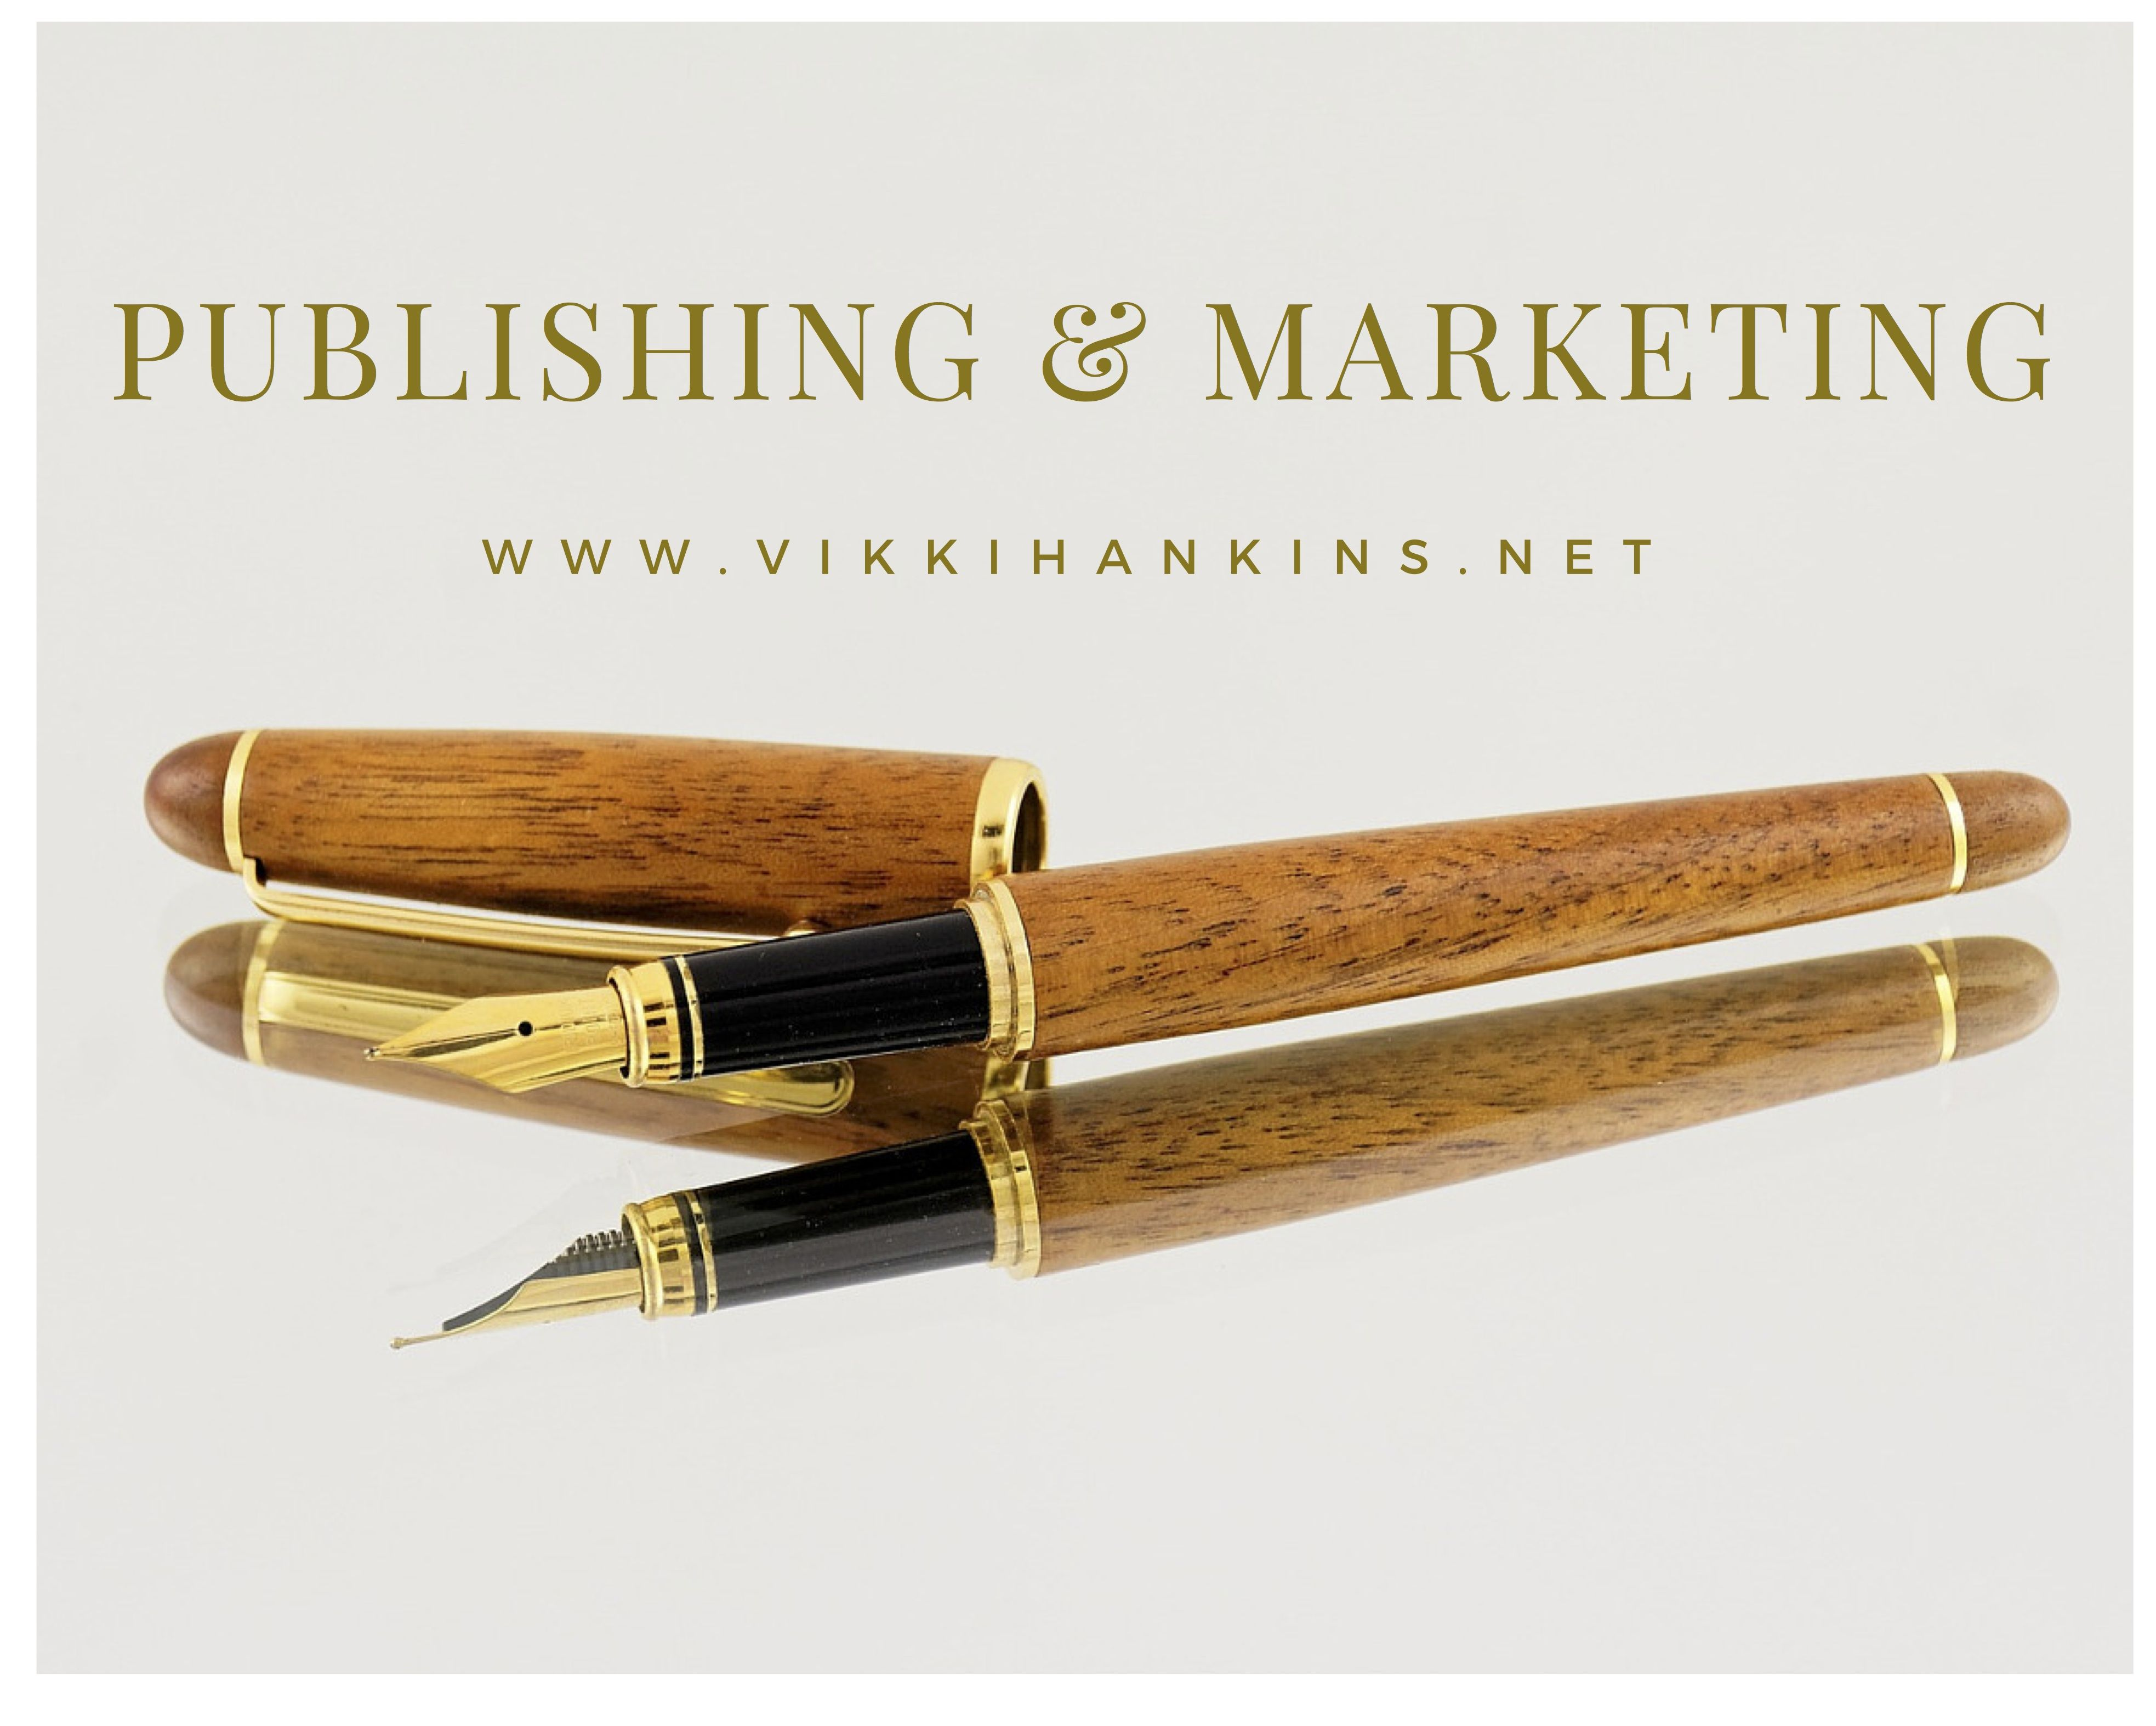 Publish your book with Vikki Hankins - A Hands On Approach! #publishing #marketing #vikkihankins #bookpublishing #digitalmarketing #bookmarketing #bookpr  #bookmarketing #digitalmarketing